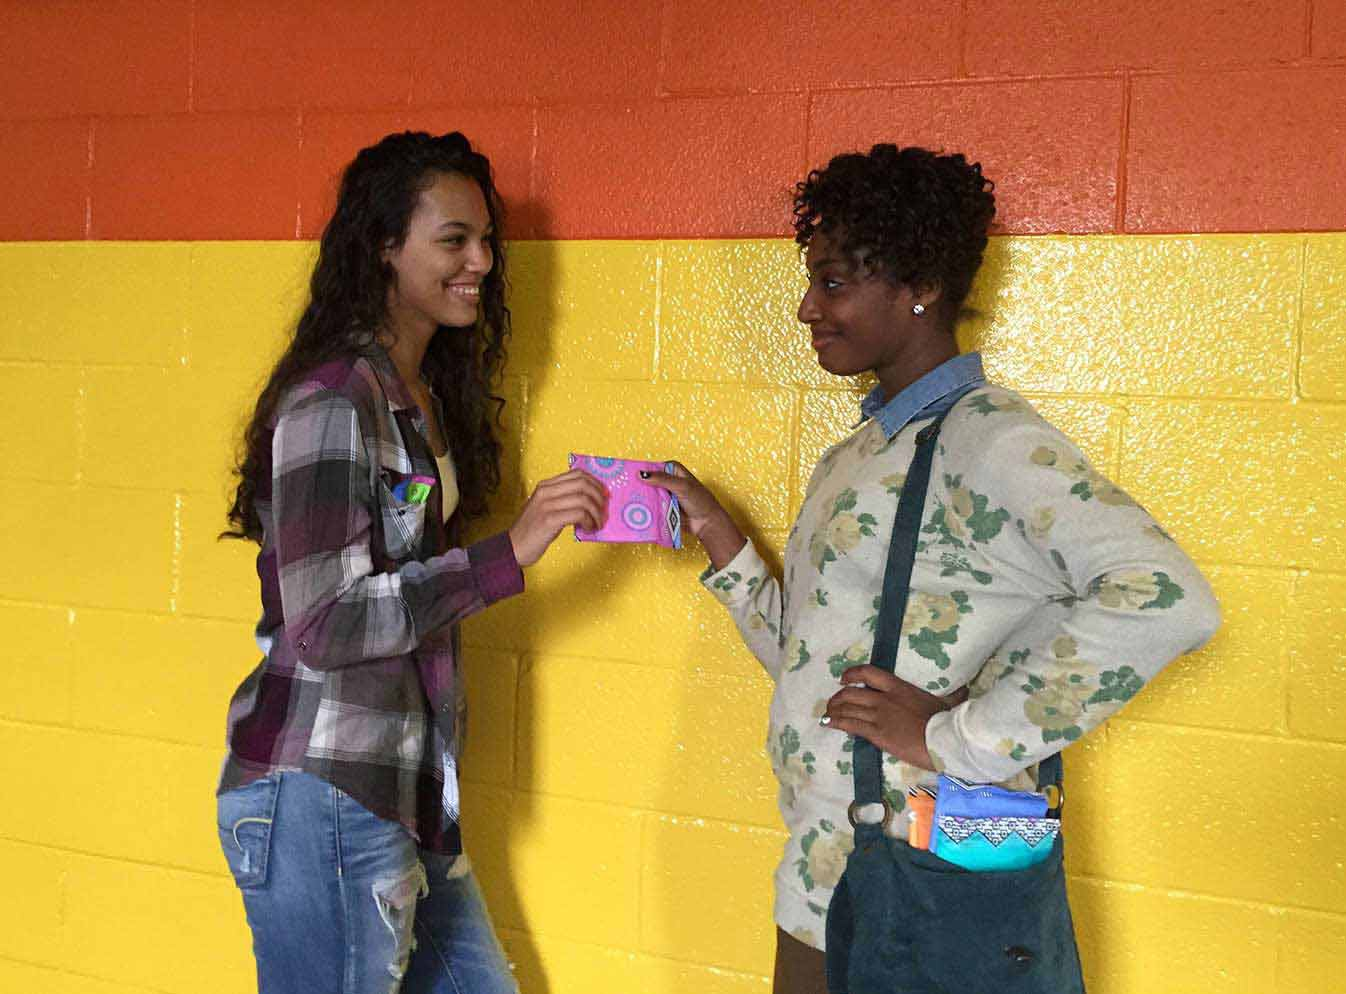 Girl handing pad to friend leaning on yellow wall